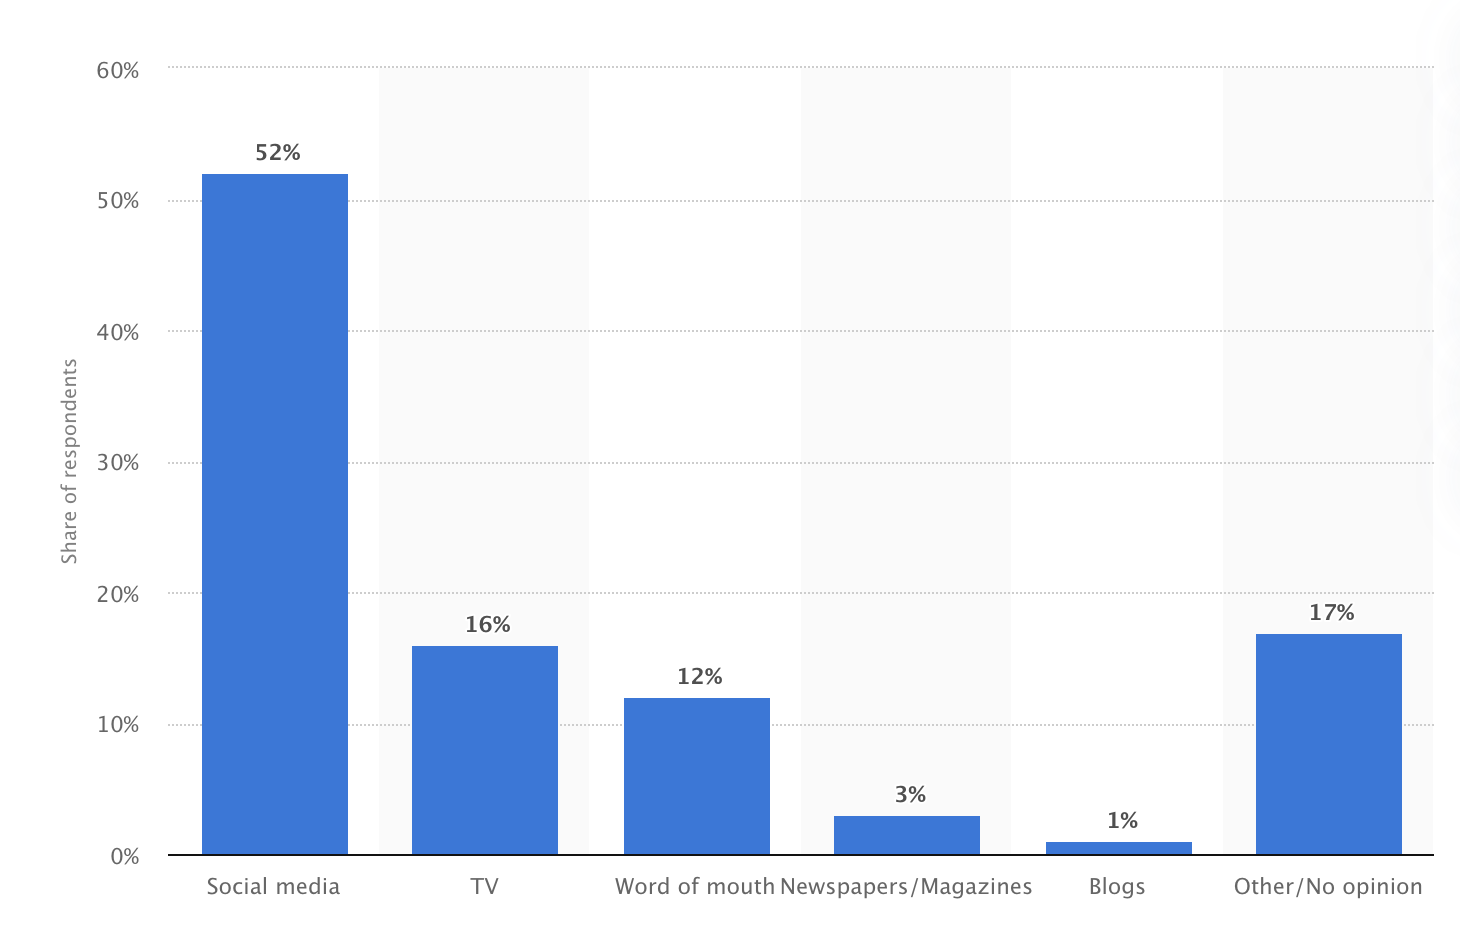 Sources of brand discovery for Generation Z in the United States as of March 2019